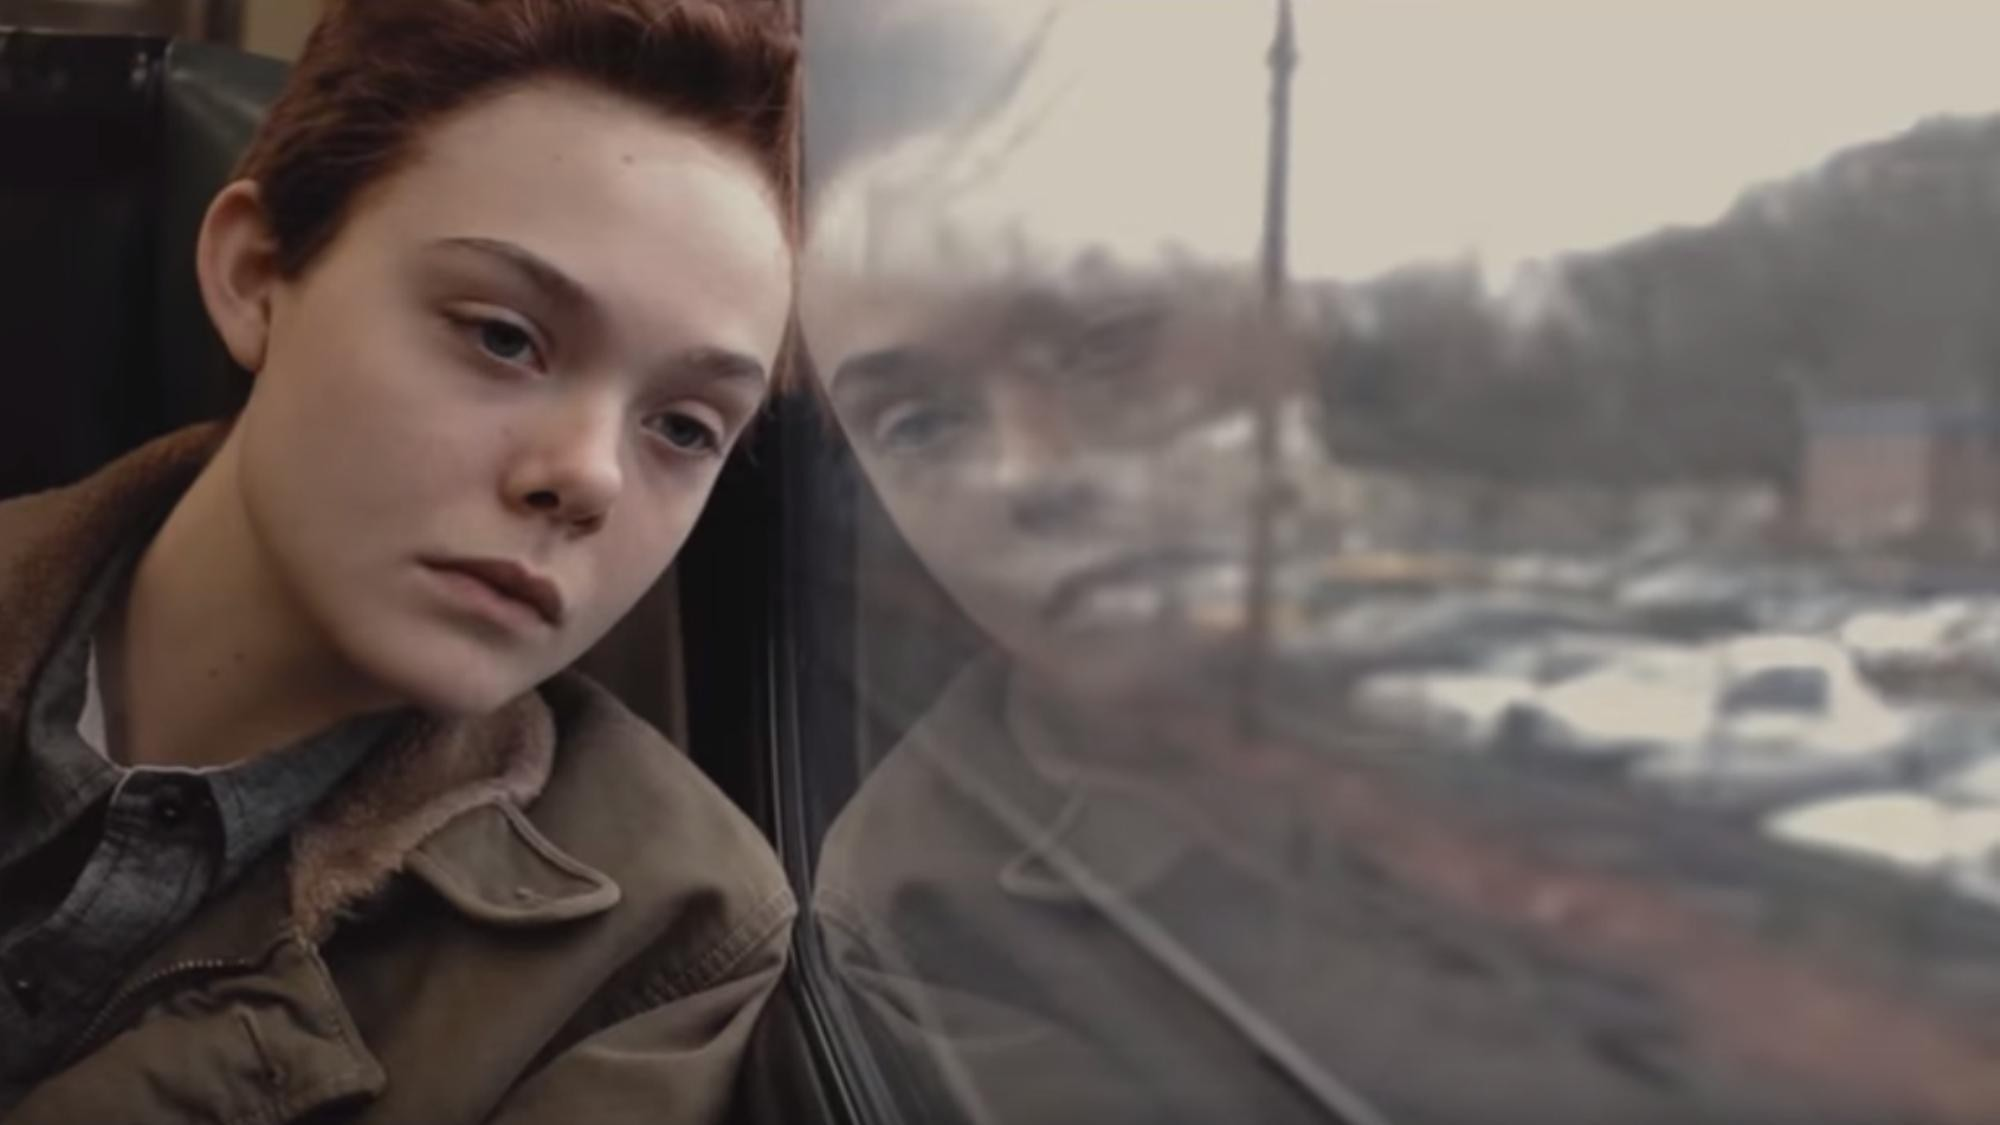 Image Result For A Movie Where A Pretends To Be A Boy